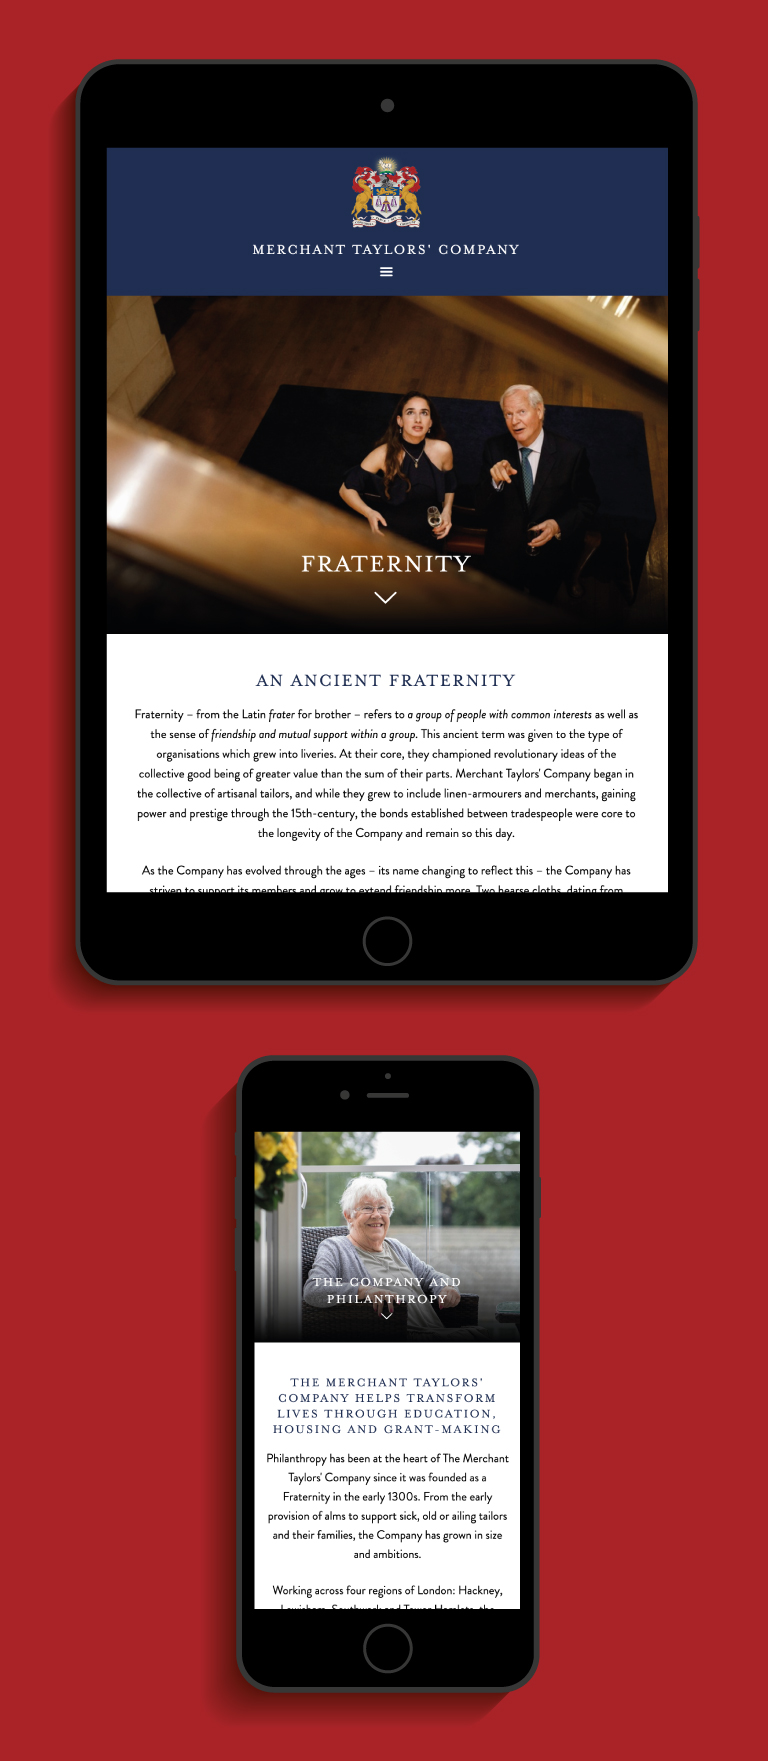 Merchant Taylors' Company Fraternity webpage on an iPad and Philanthropy webpage on an iPhone - mobile